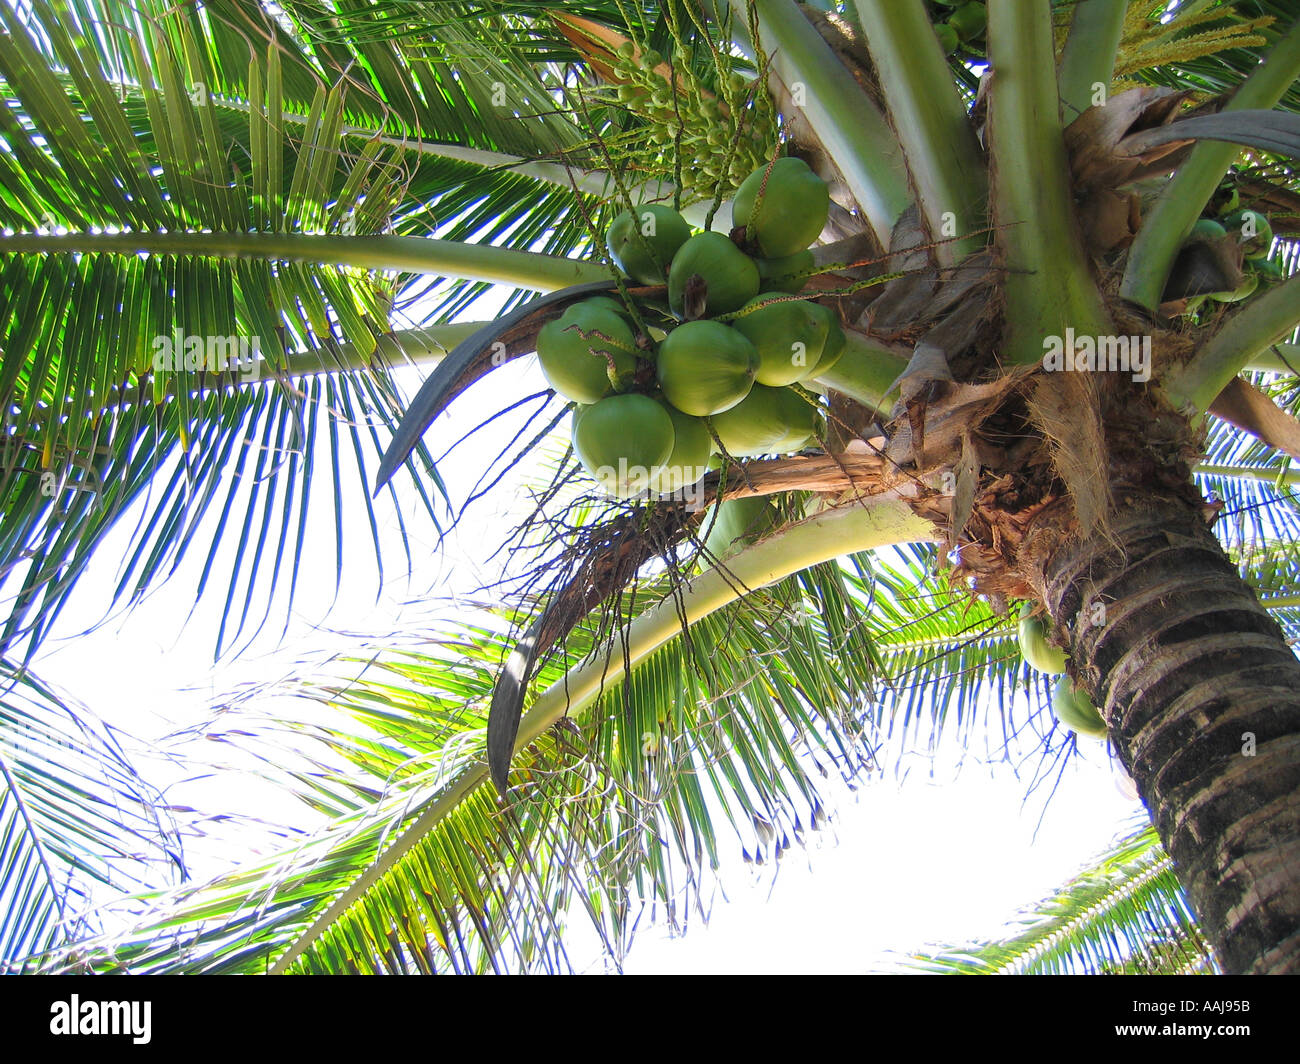 Coconut tree at the secluded Praia do Madeiro beach by Baia dos Golfinhos bay in Pipa, south of Natal, Brazil. - Stock Image